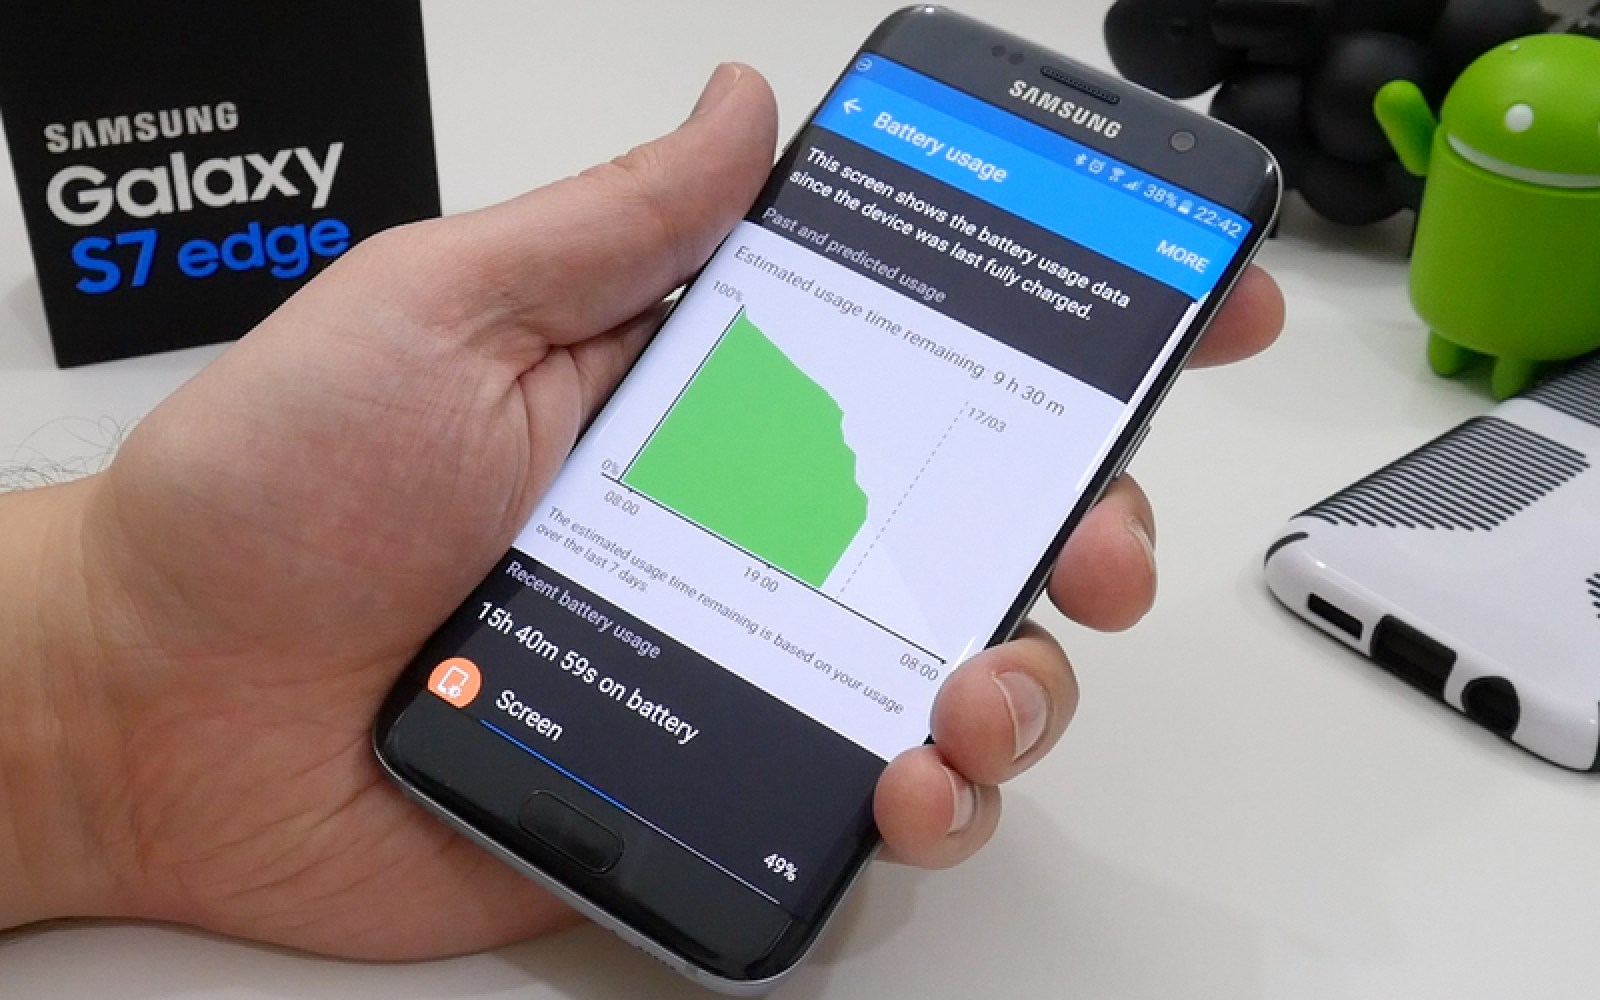 Review: Galaxy S7 Edge is a powerful and beautiful (almost) flawless smartphone [Video]